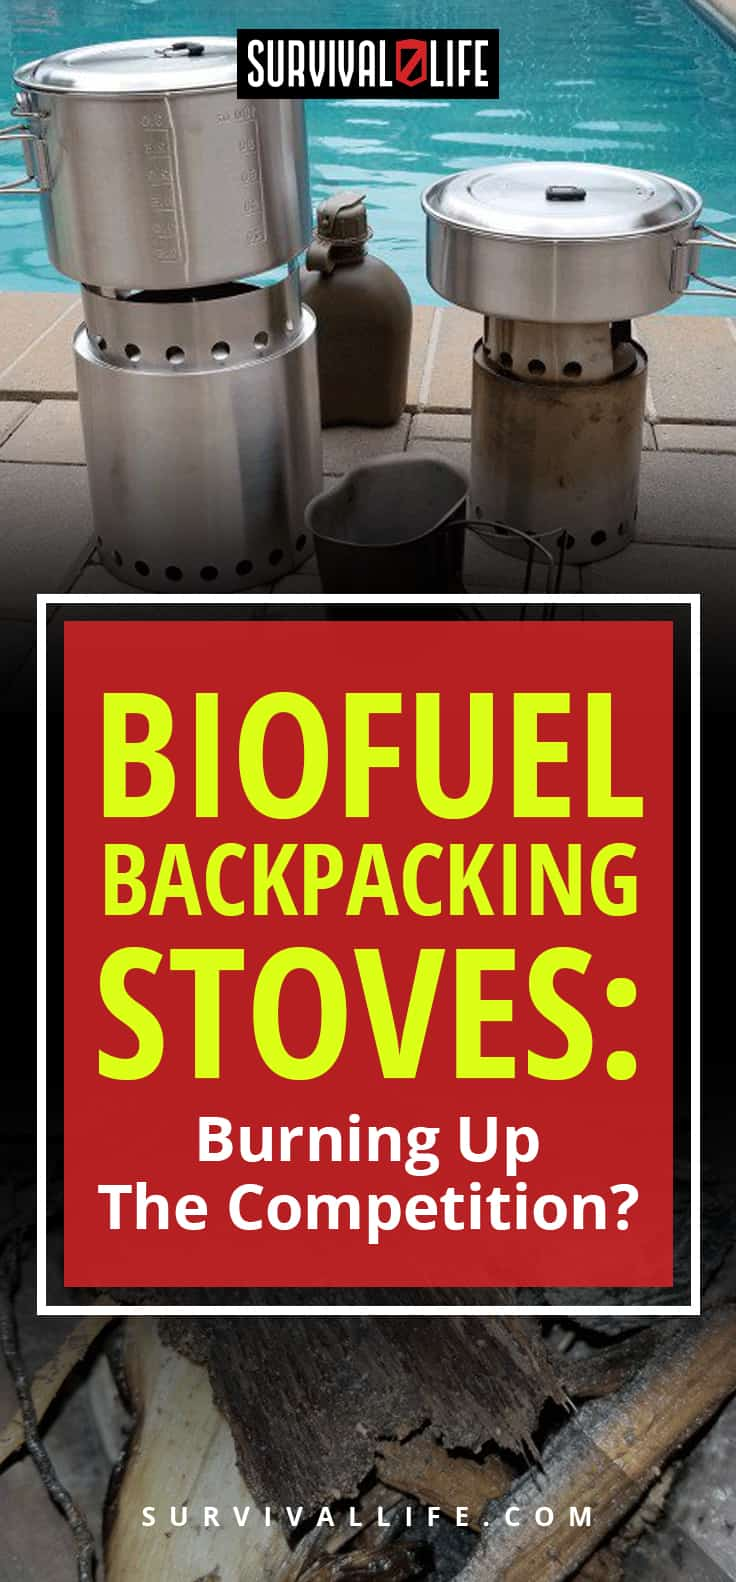 Biofuel Backpacking Stoves: Burning Up The Competition?